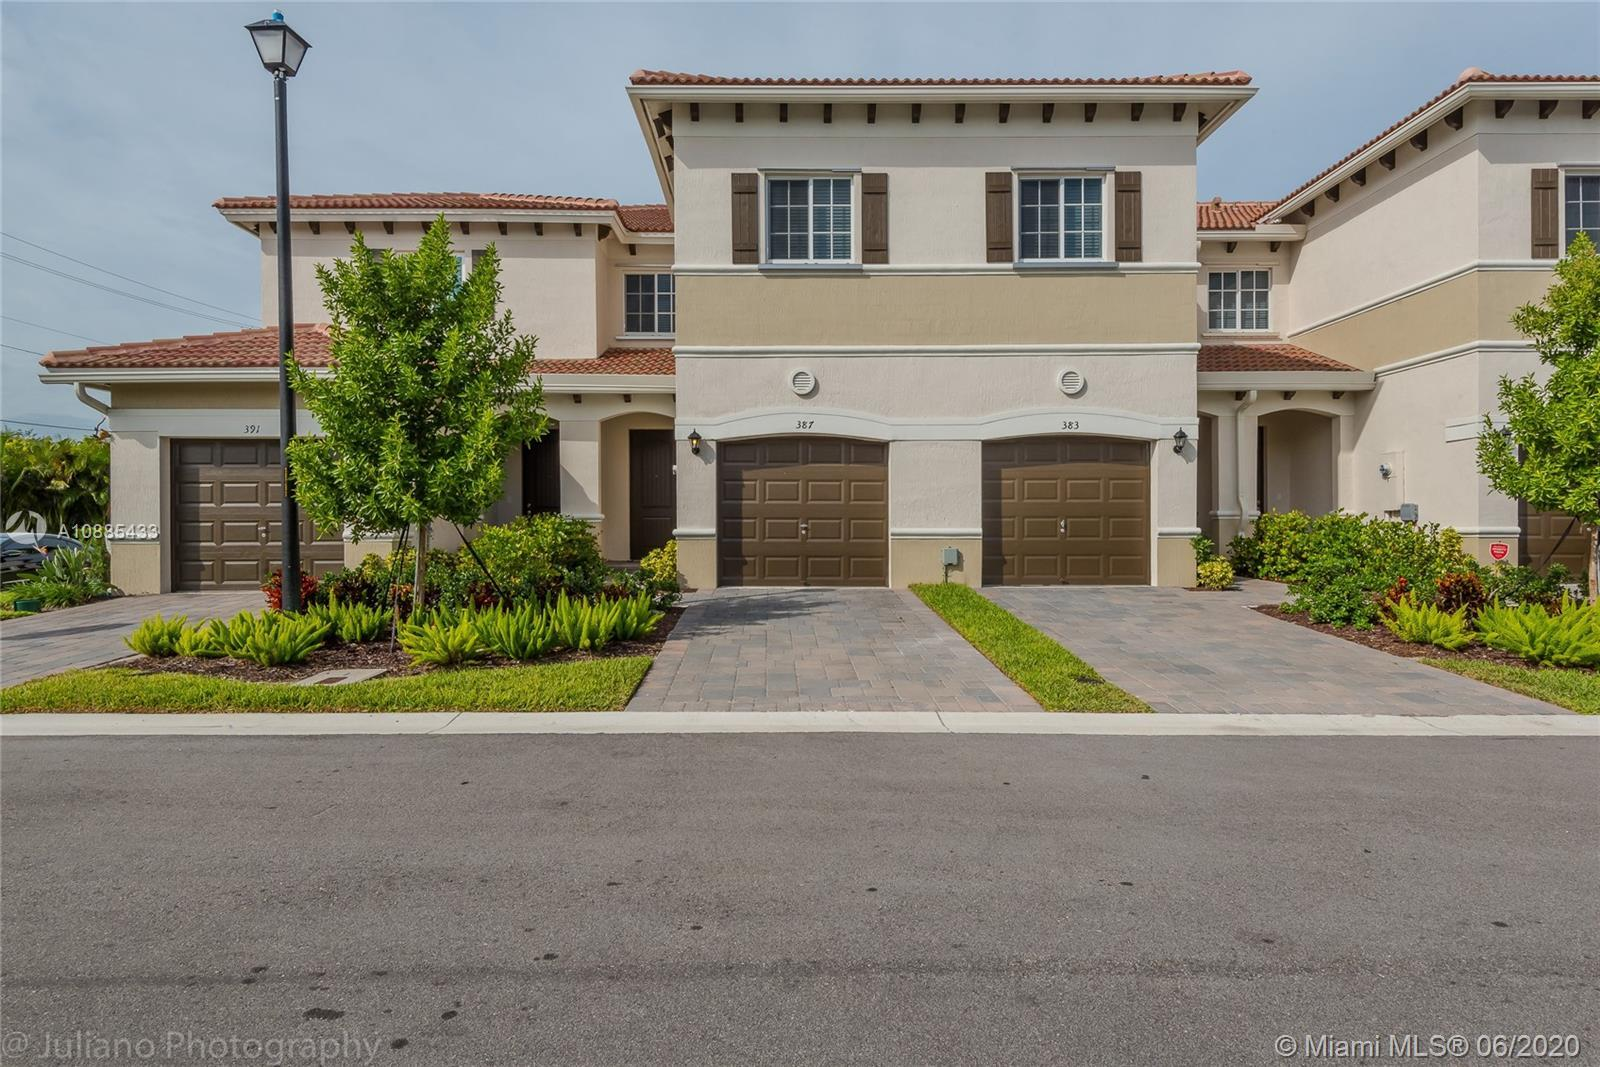 THE BRAND NEW COMMUNITY CLOSE TO THE BEACHES AND MAIN ROADS. NICE TOWNHOME WITH COVERED PATIO AND GA